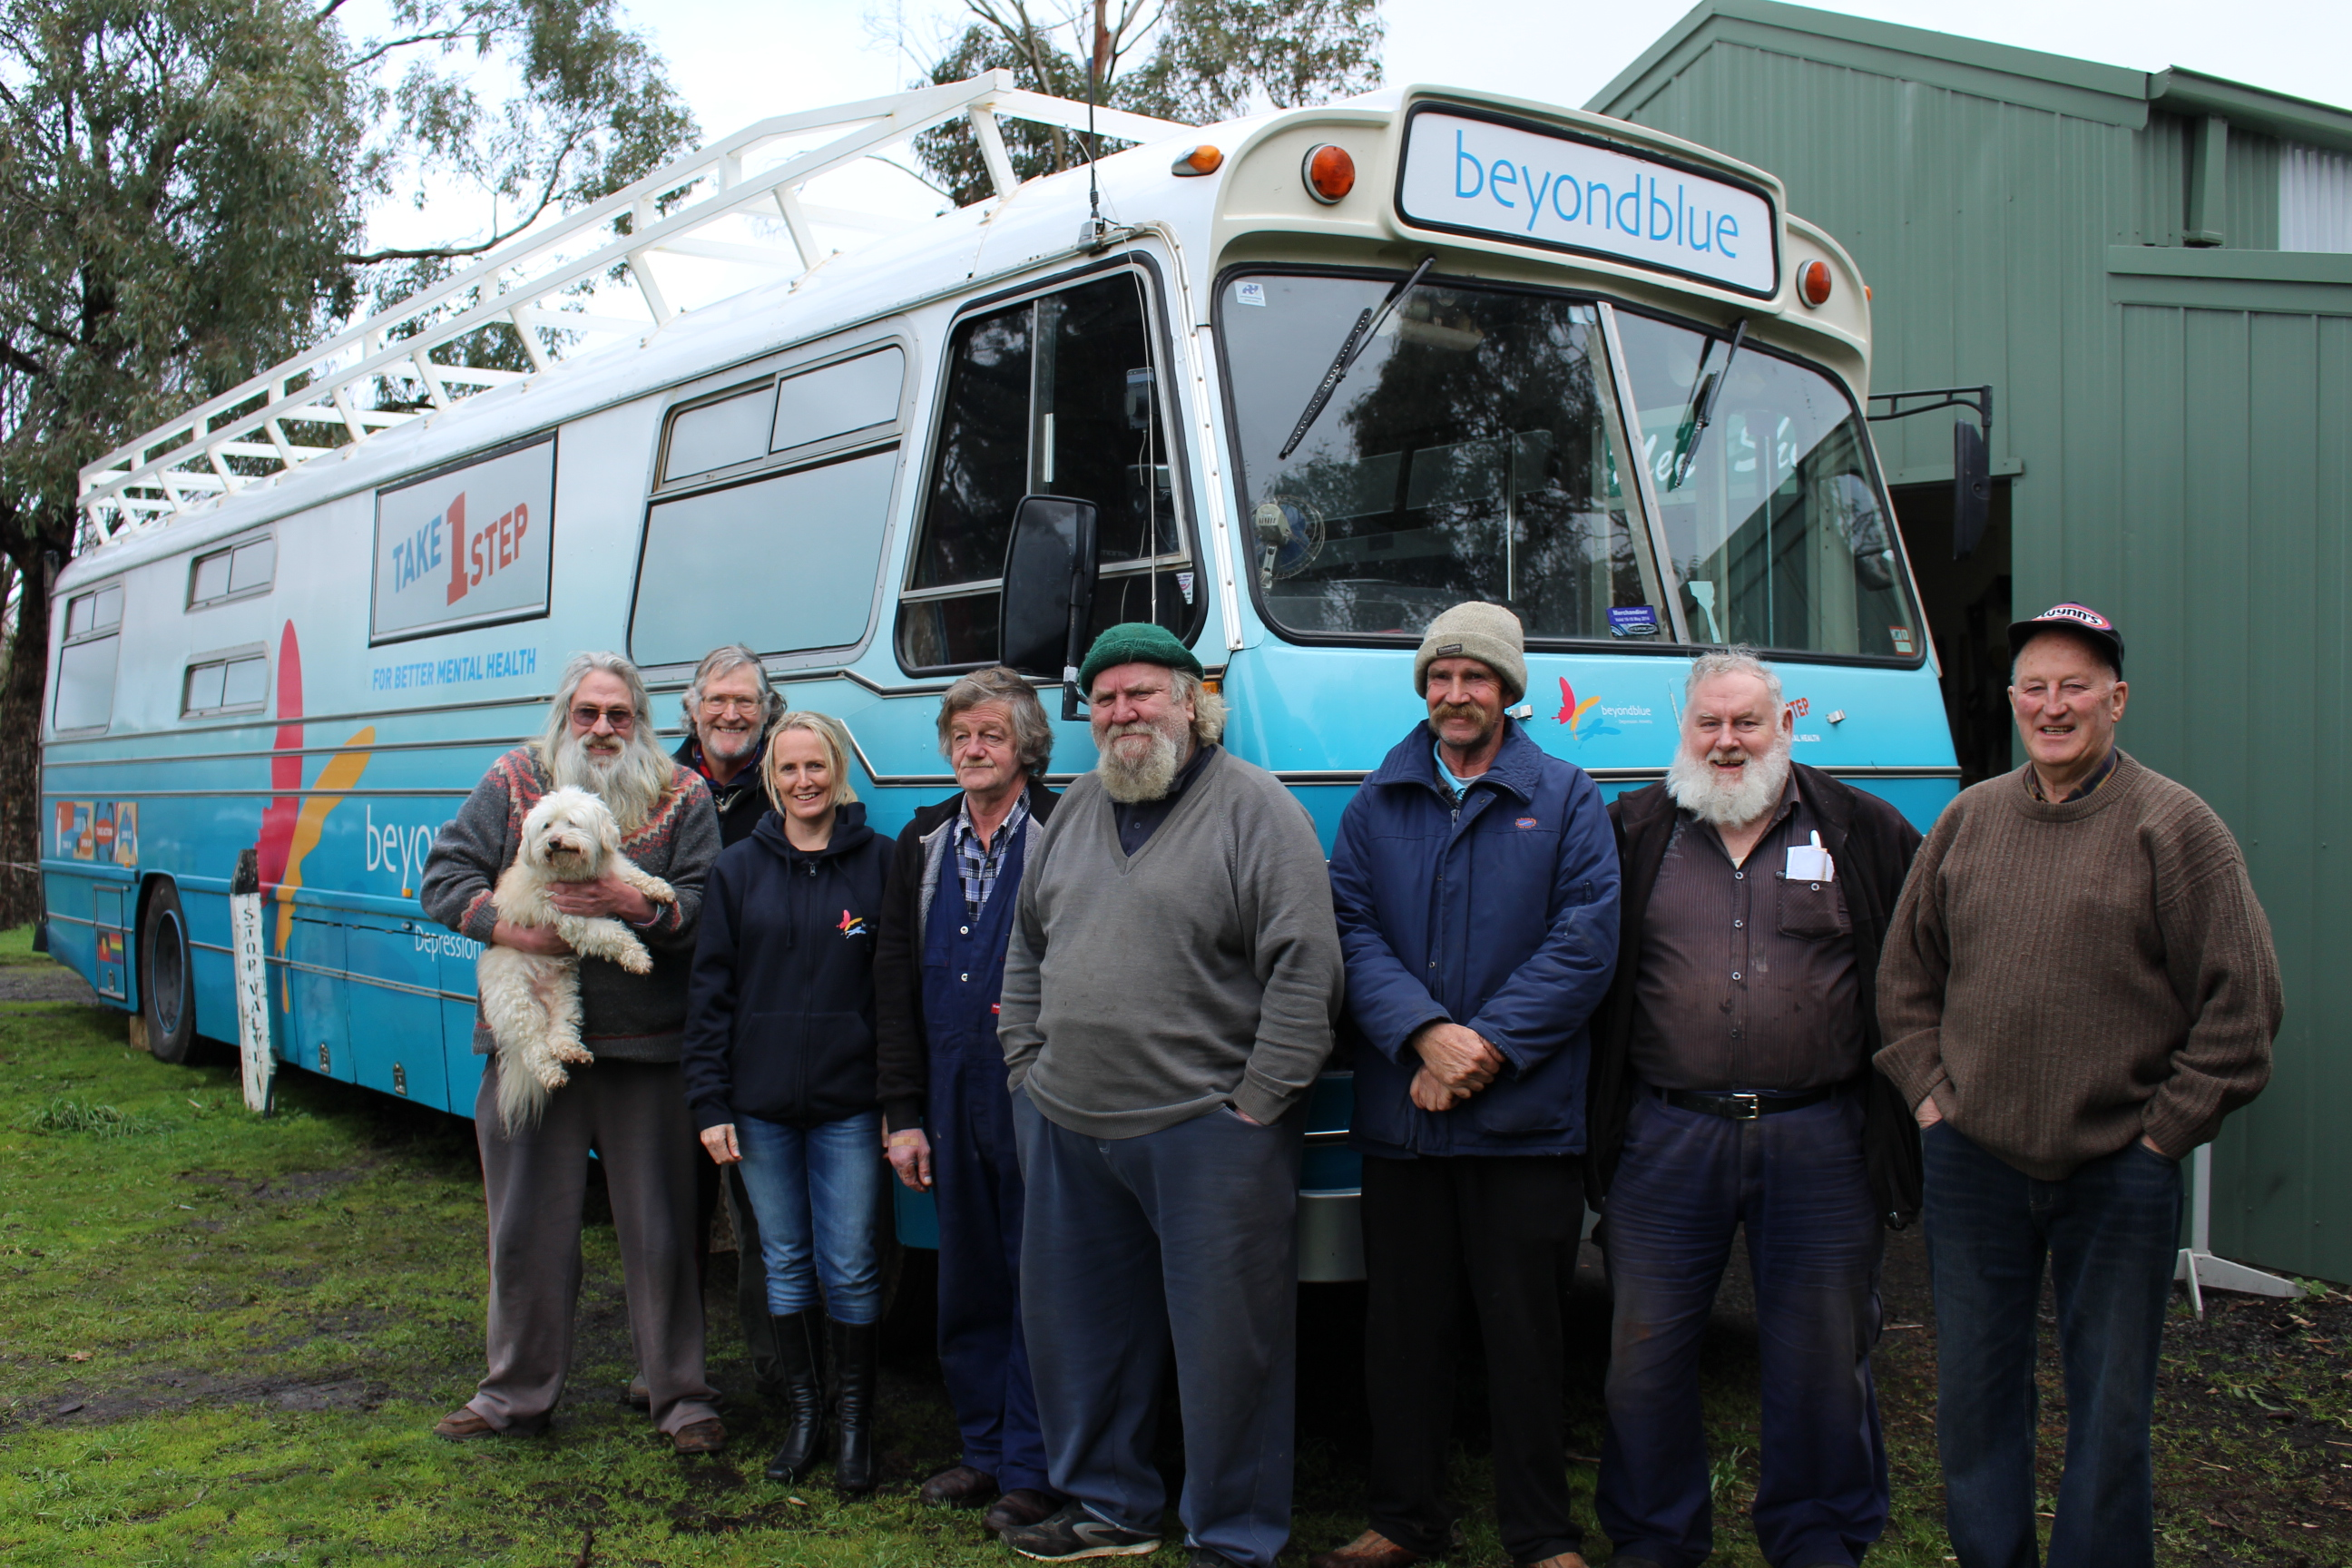 Members of Cobaw Men's Shed in Kyneton with Beyond Blue's Athena and Roadshow Rhonda: VIC.